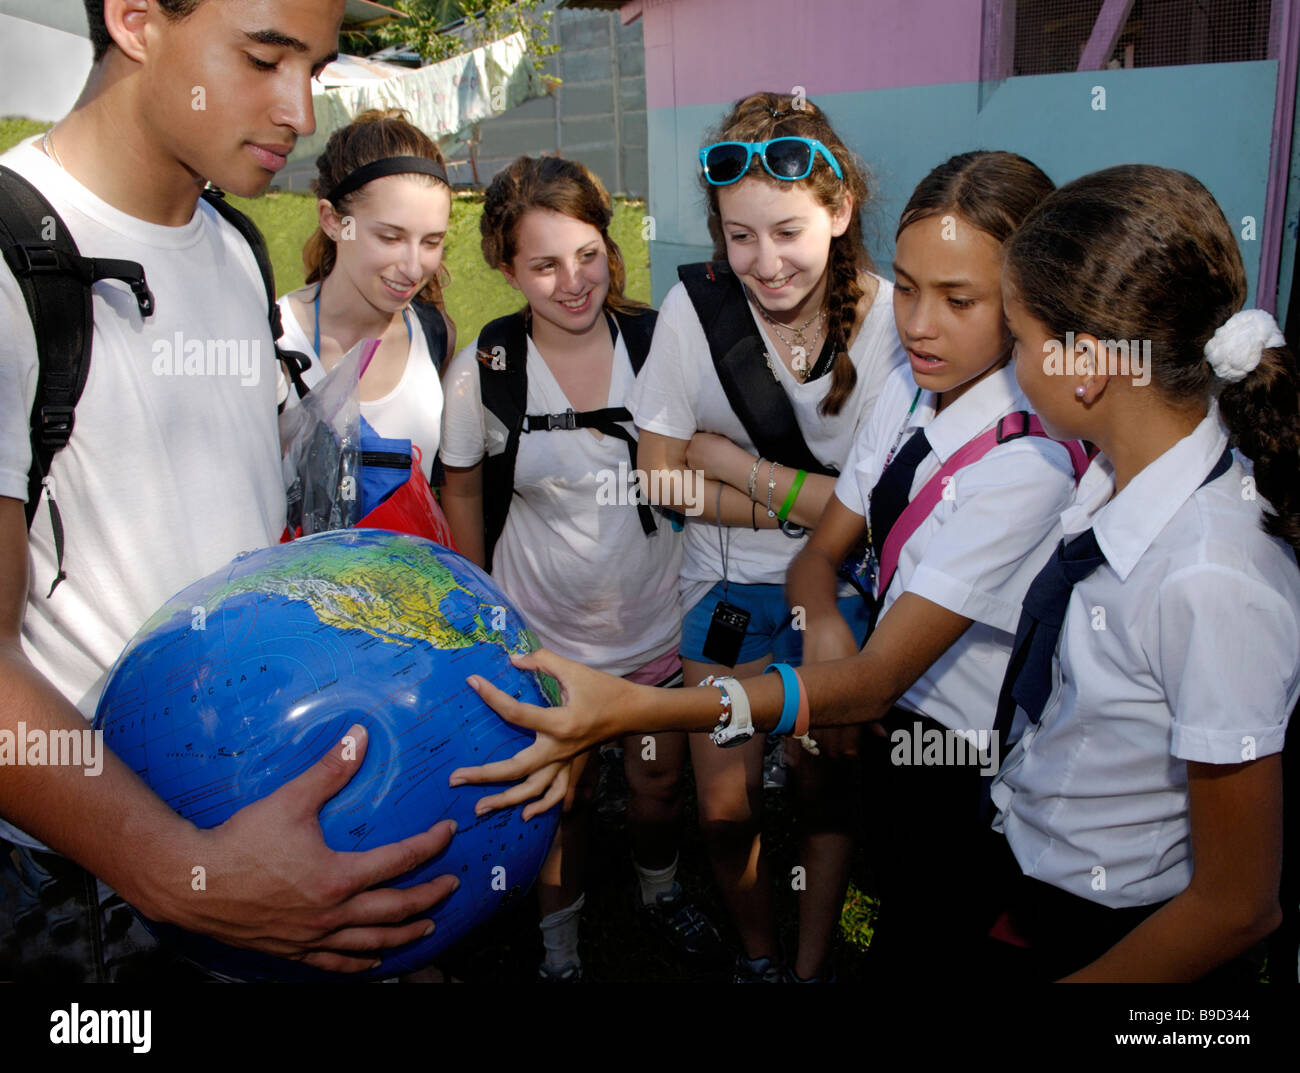 North American teenagers interacting with Costa Rican school children on a cultural exchange trip - Stock Image